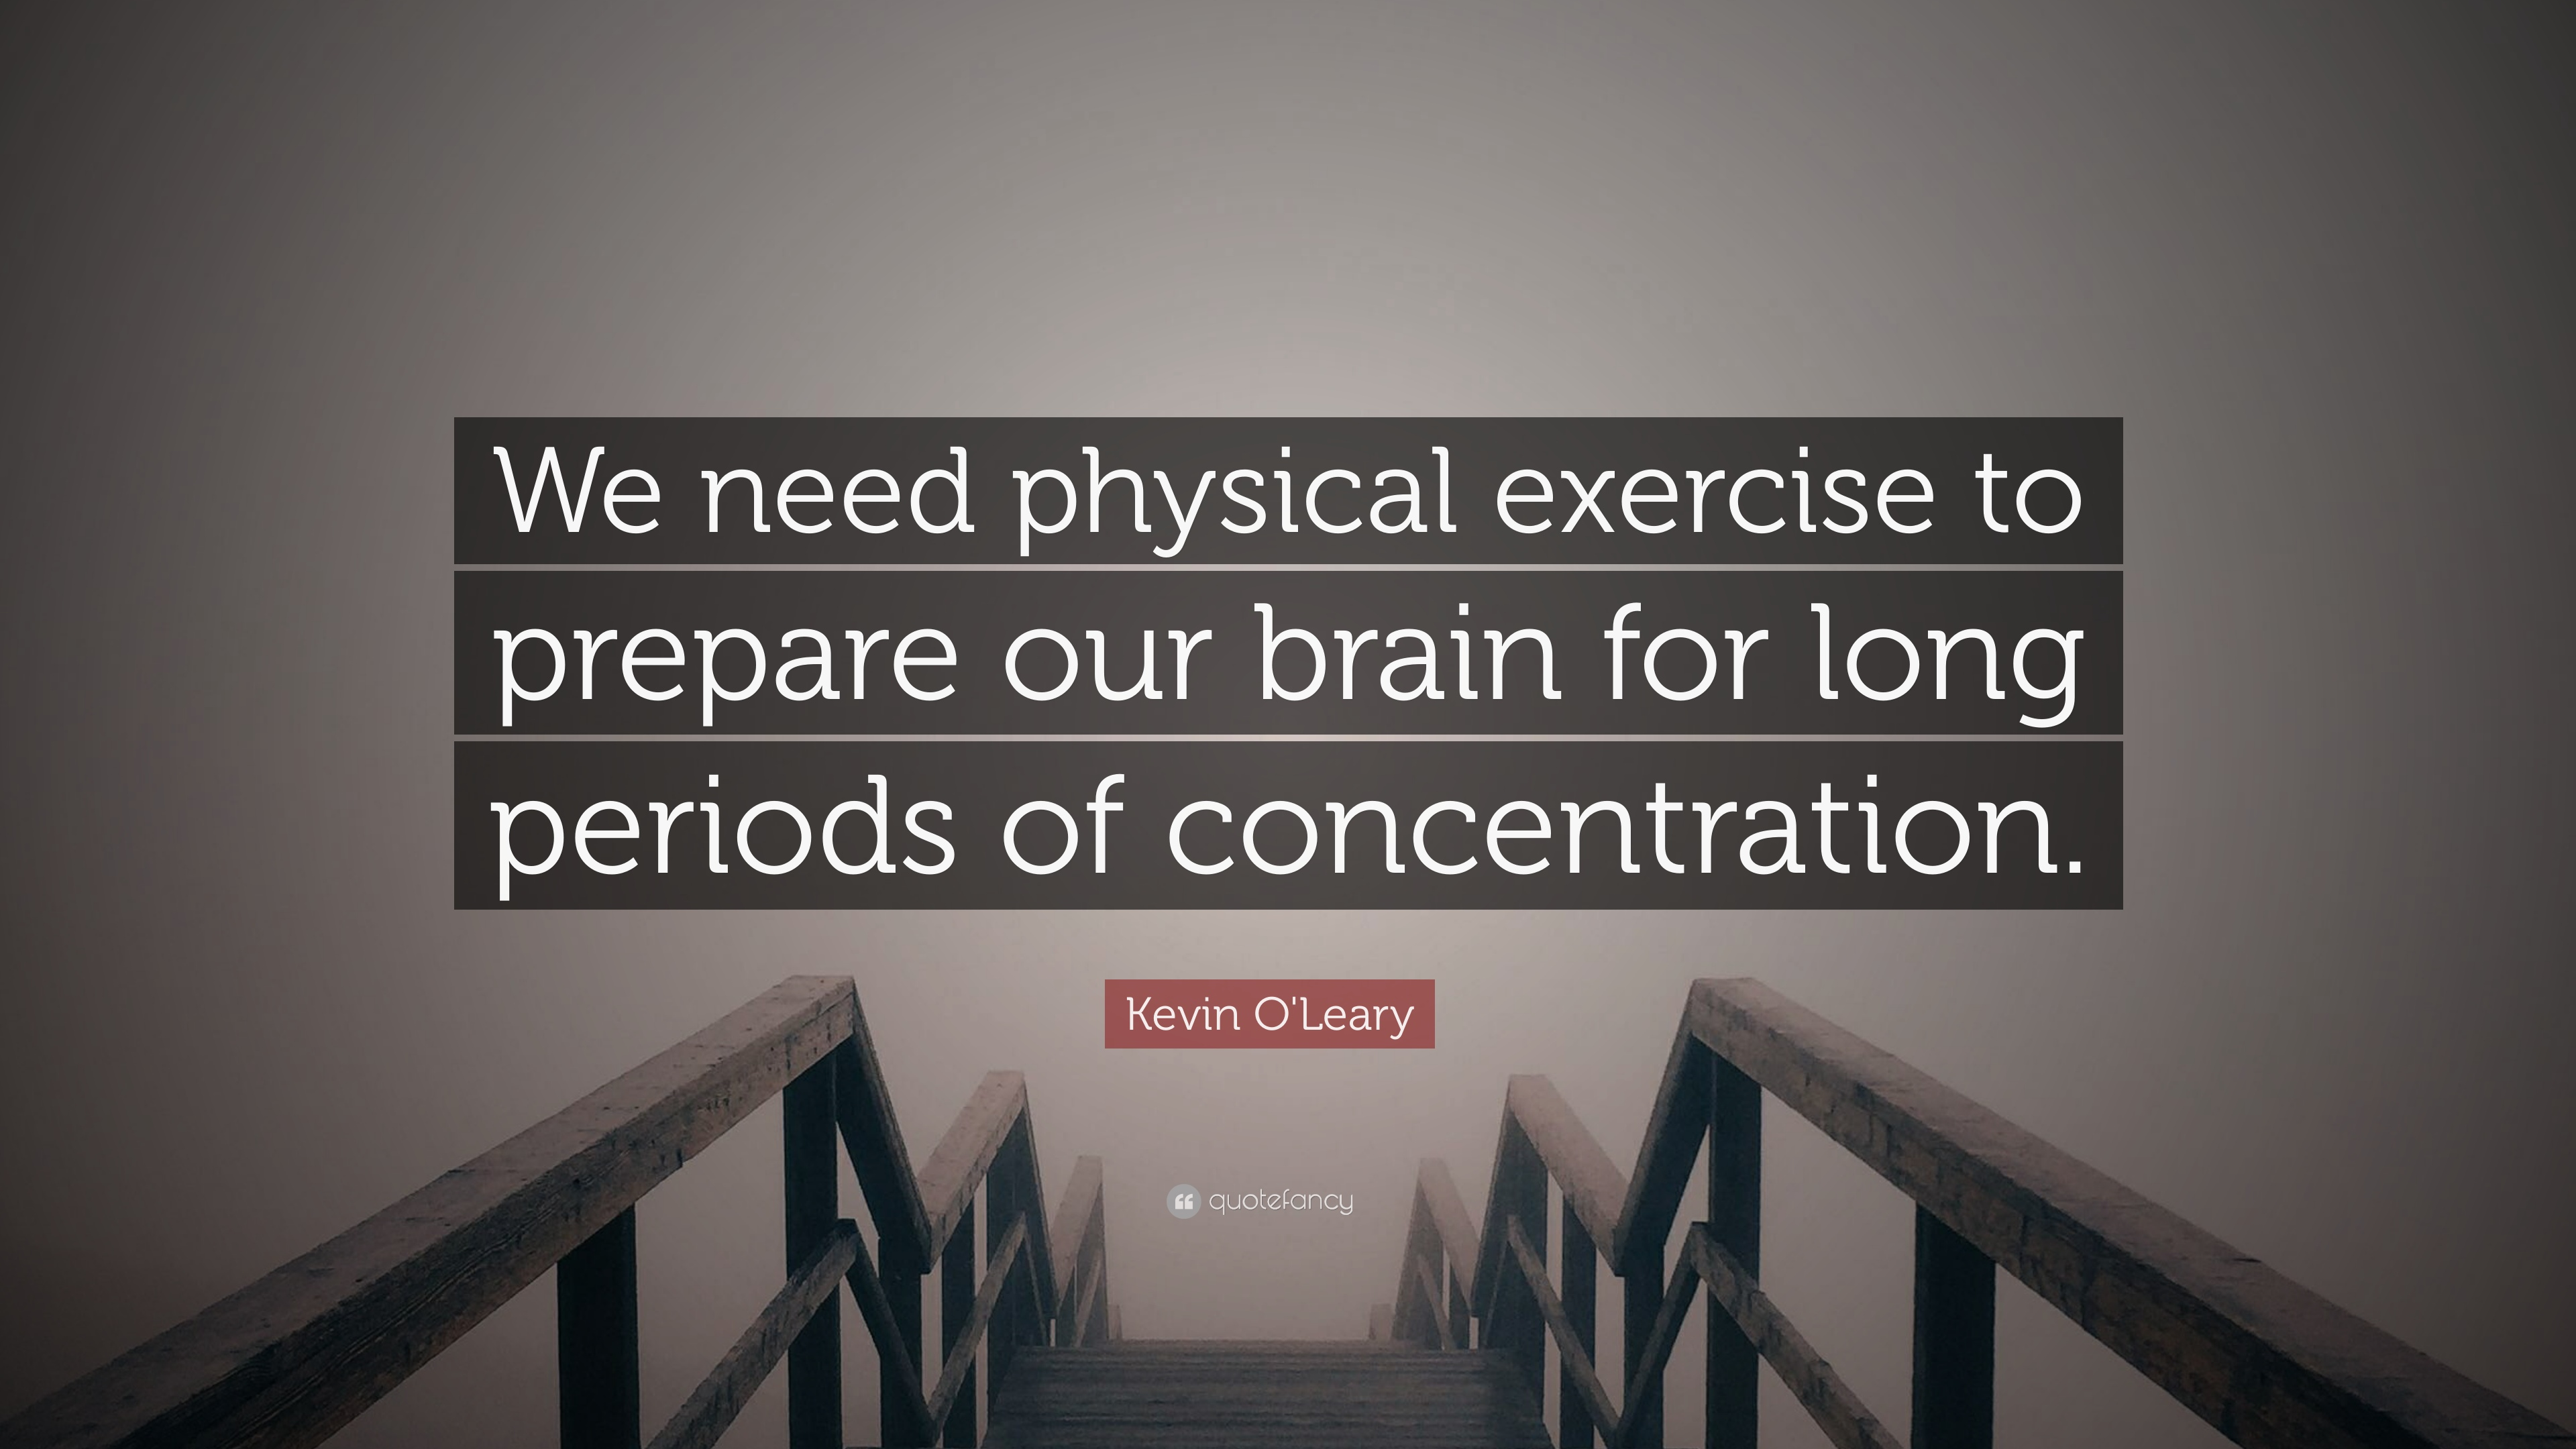 Kevin O Leary Quote We Need Physical Exercise To Prepare Our Brain For Long Periods Of Concentration 7 Wallpapers Quotefancy